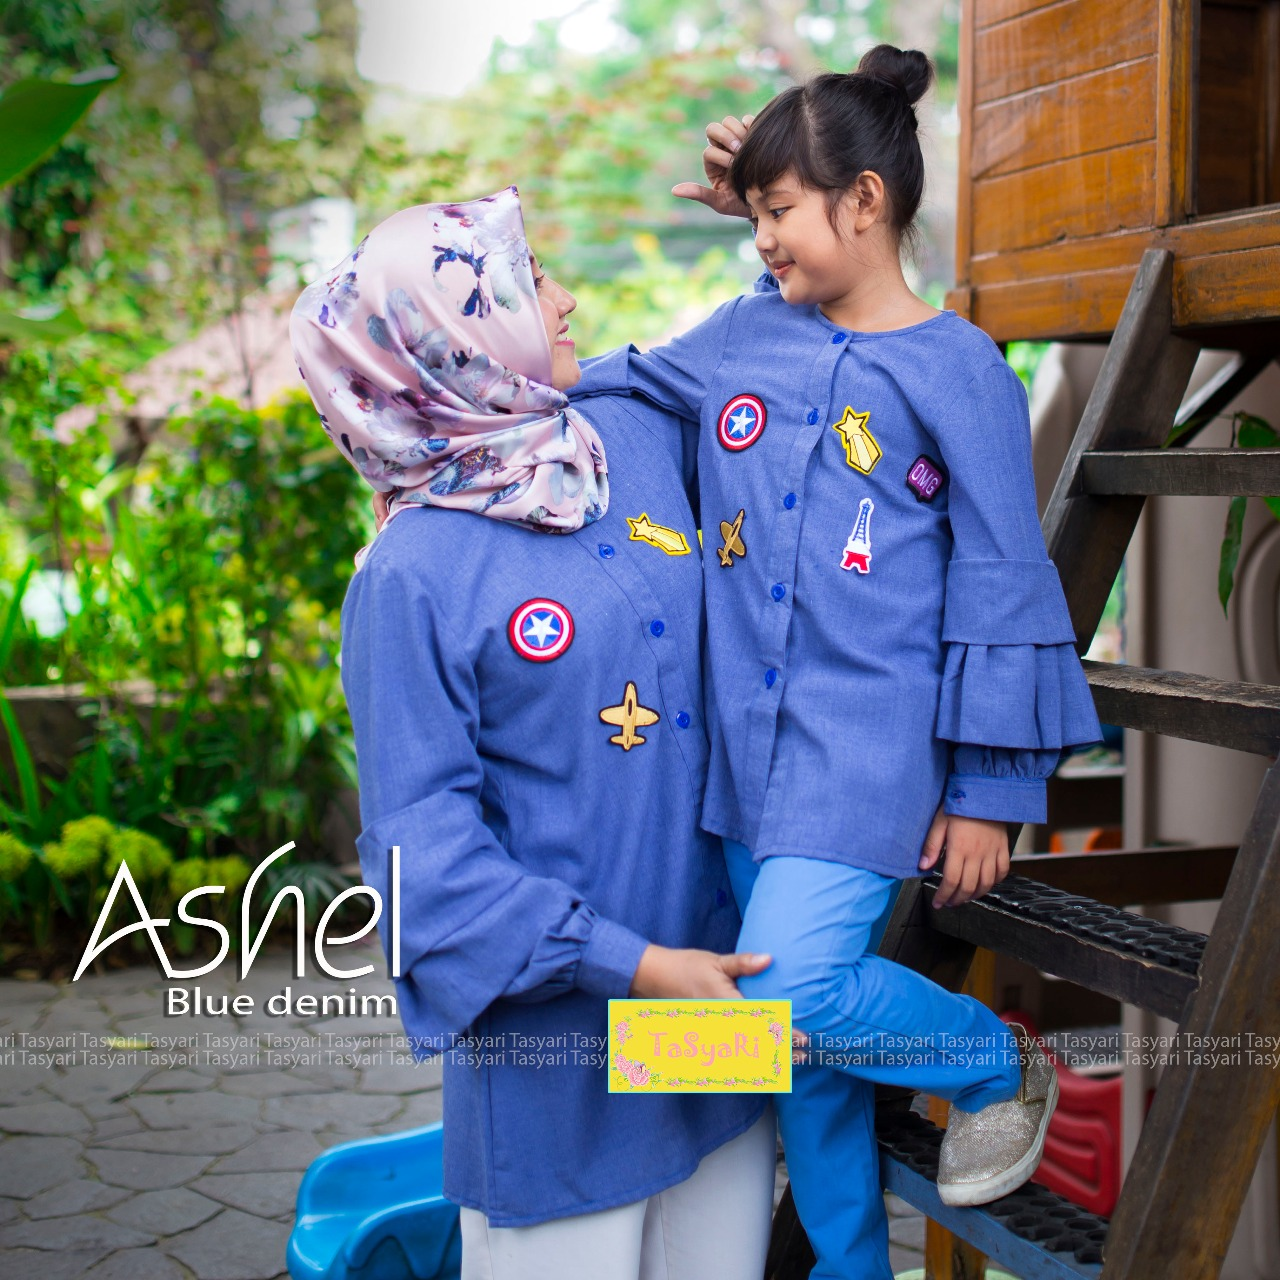 Baju muslim, model gamis, style busana muslim ashel by tasyari blue denim